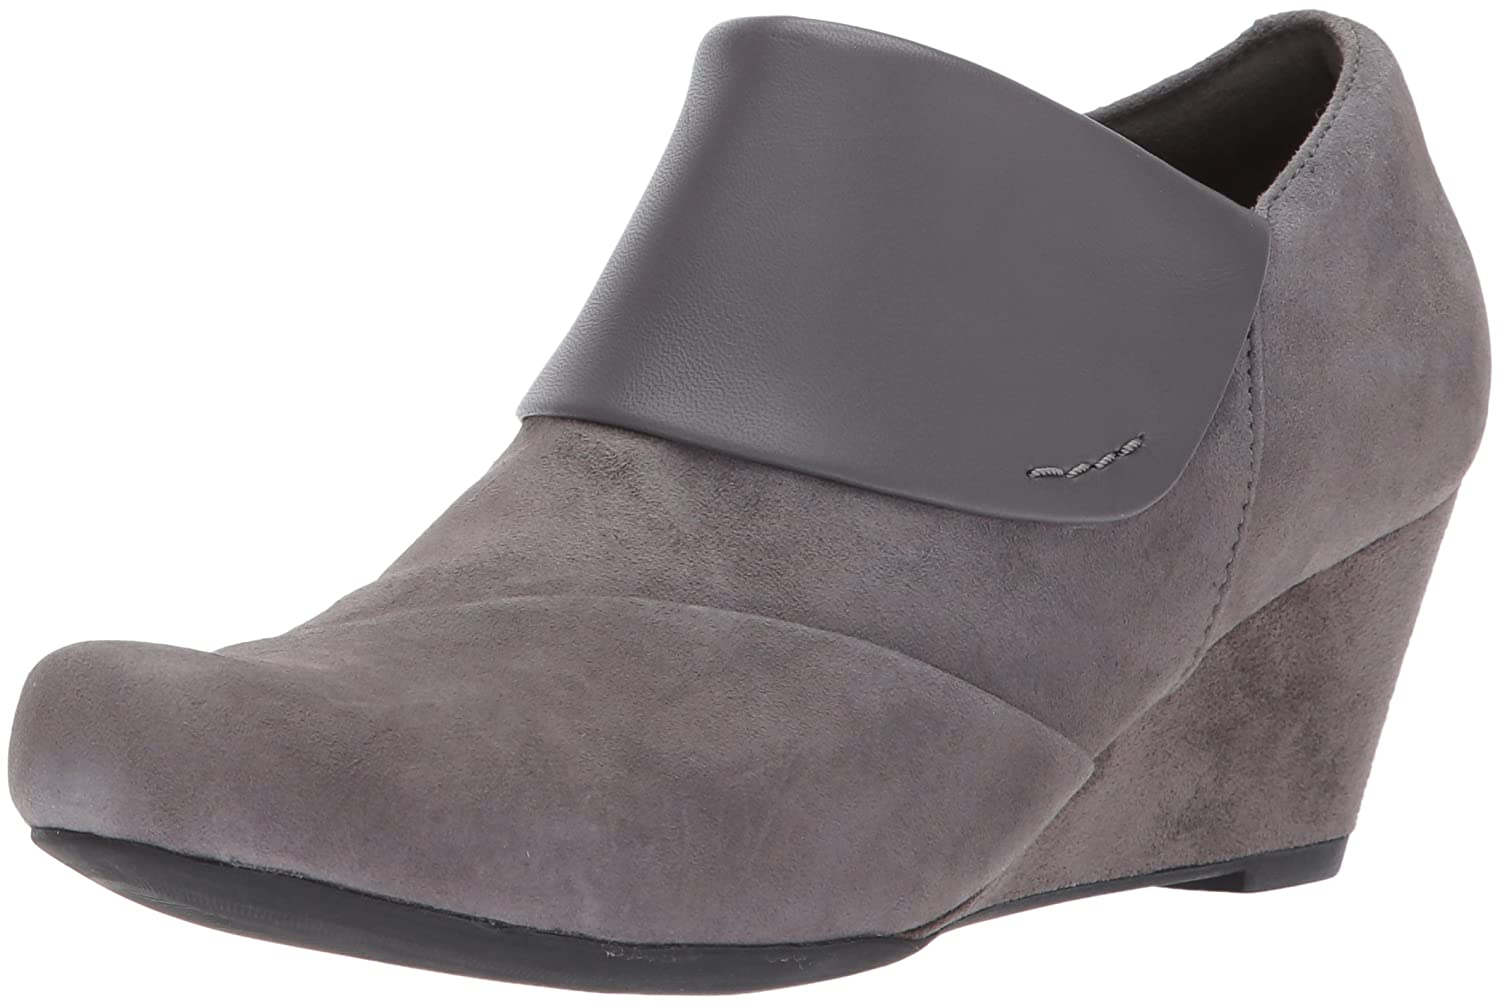 CLARKS Women's Flores Dahlia Ankle Bootie B01MQUFLYY 10 B(M) US|Grey Suede/Leather Combi